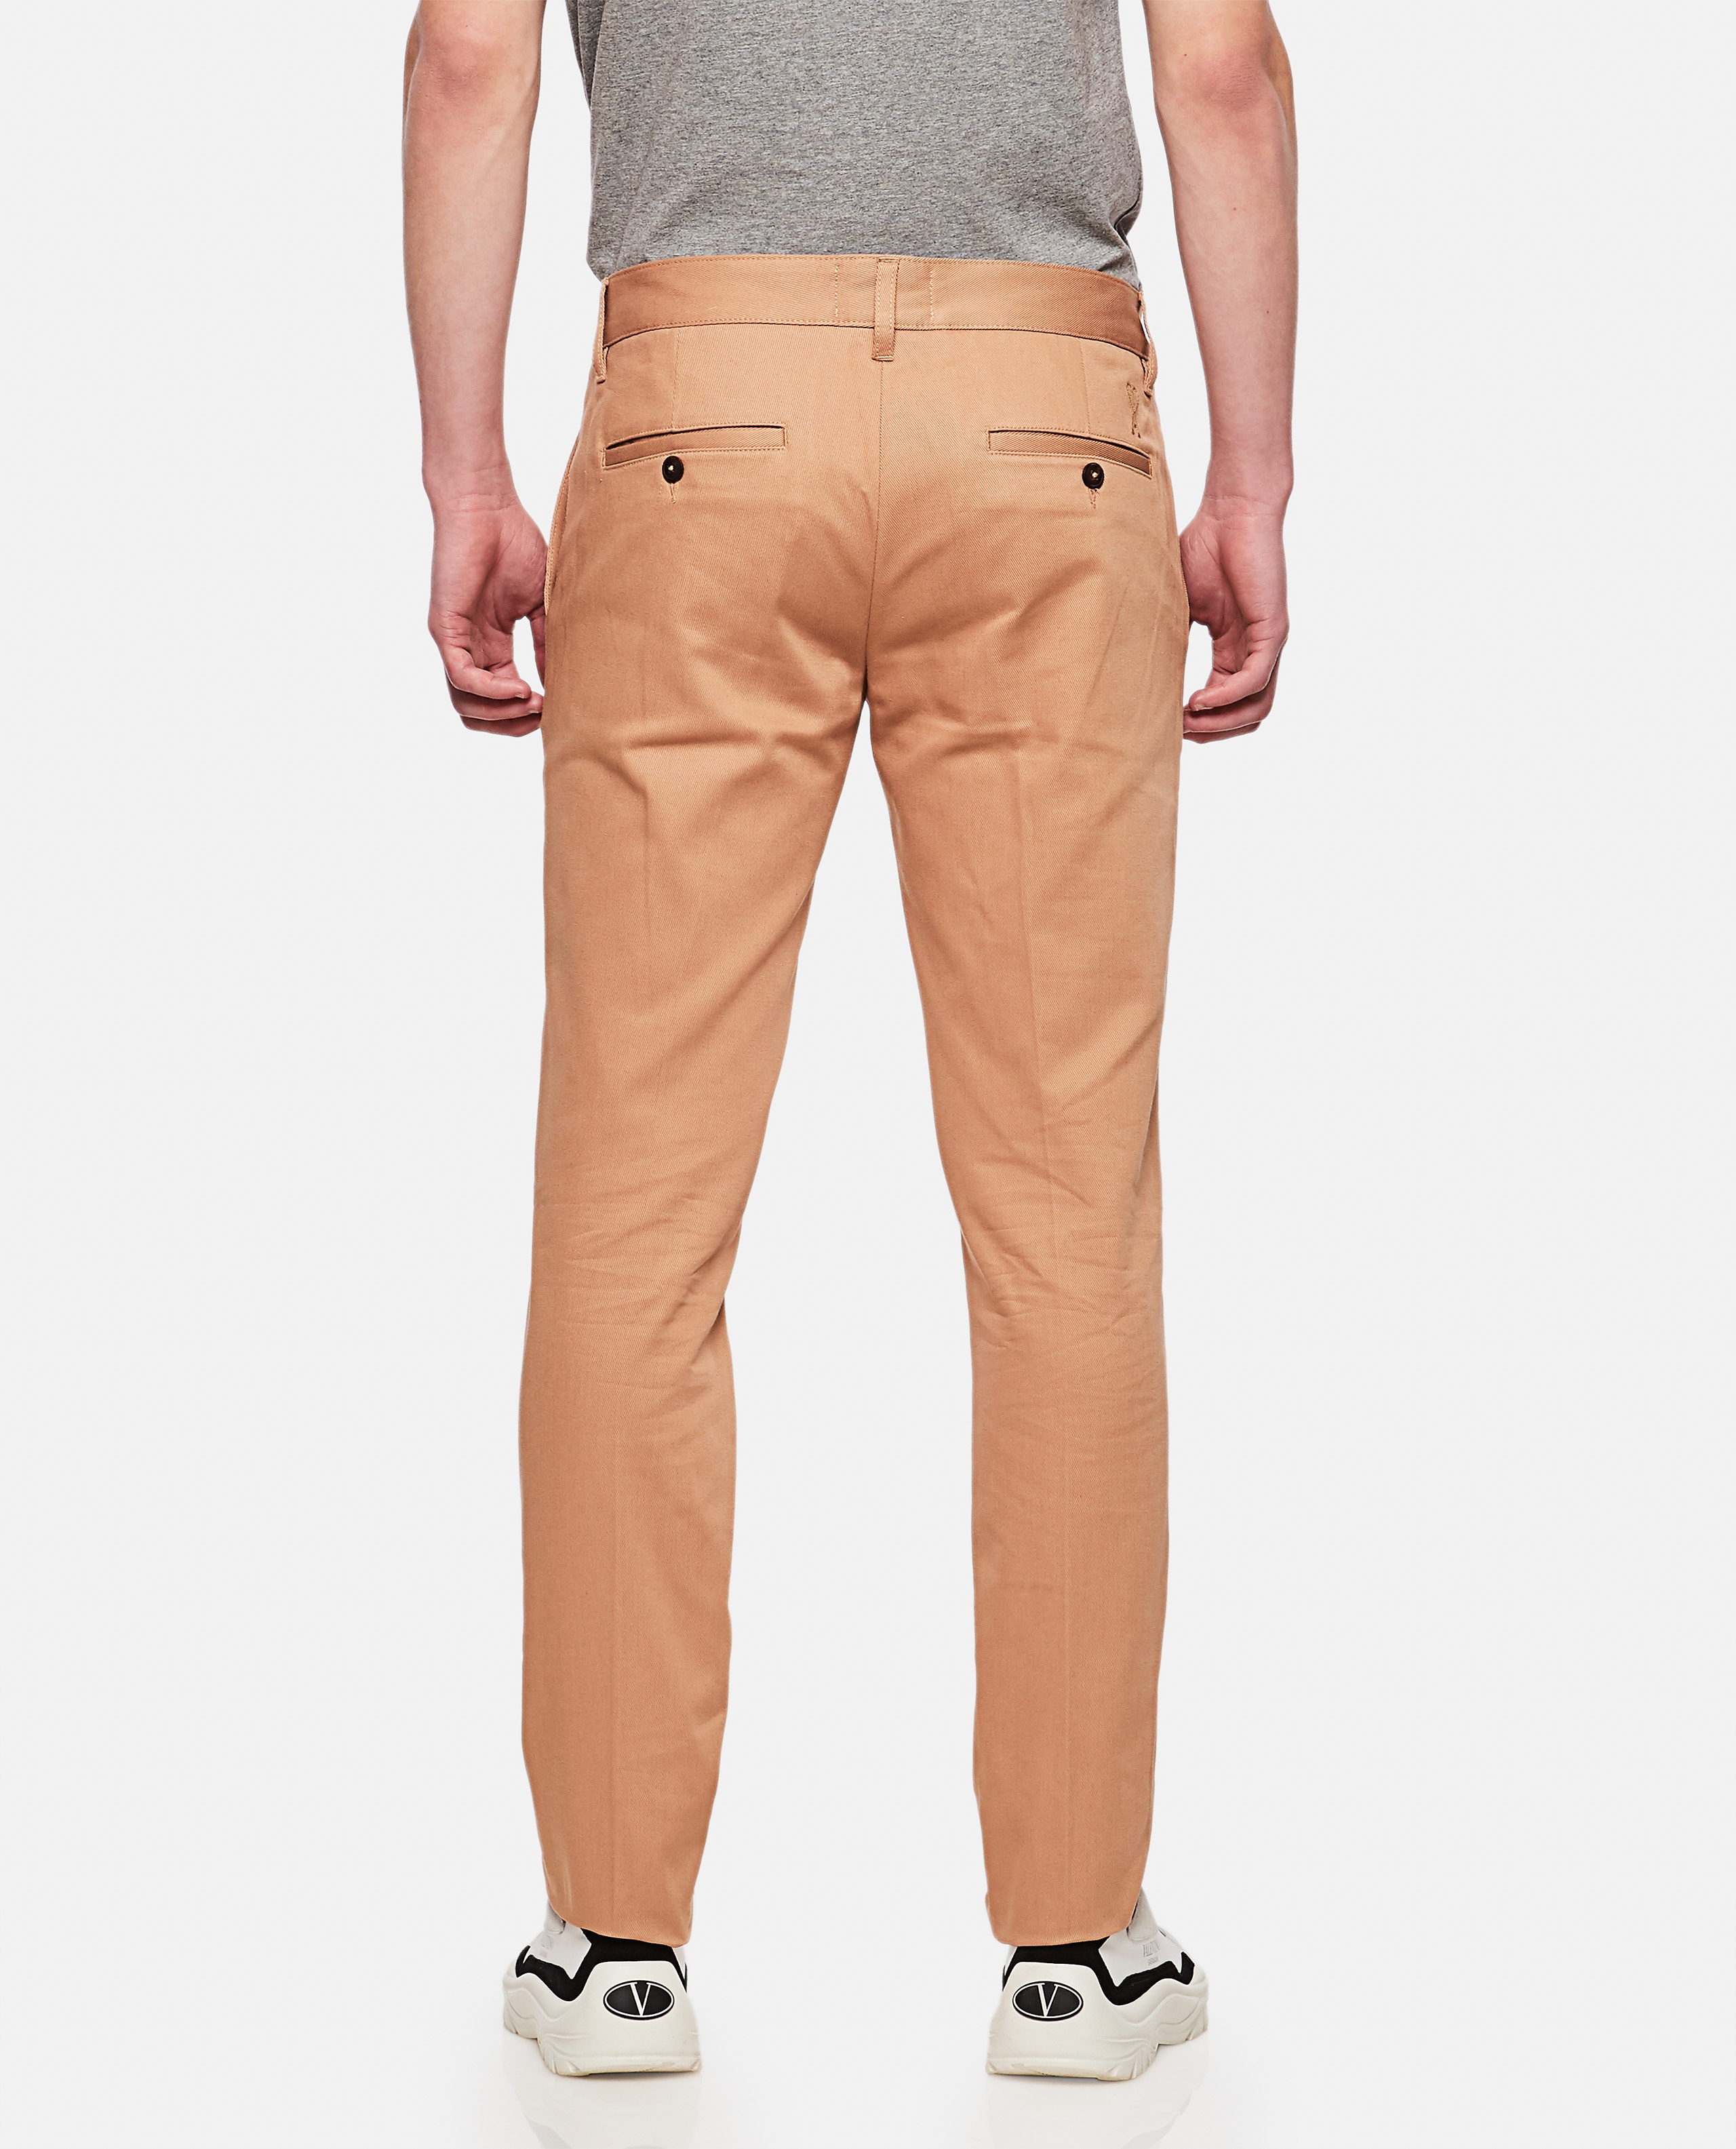 Chino trousers Uomo AMI Paris 000291370042907 3